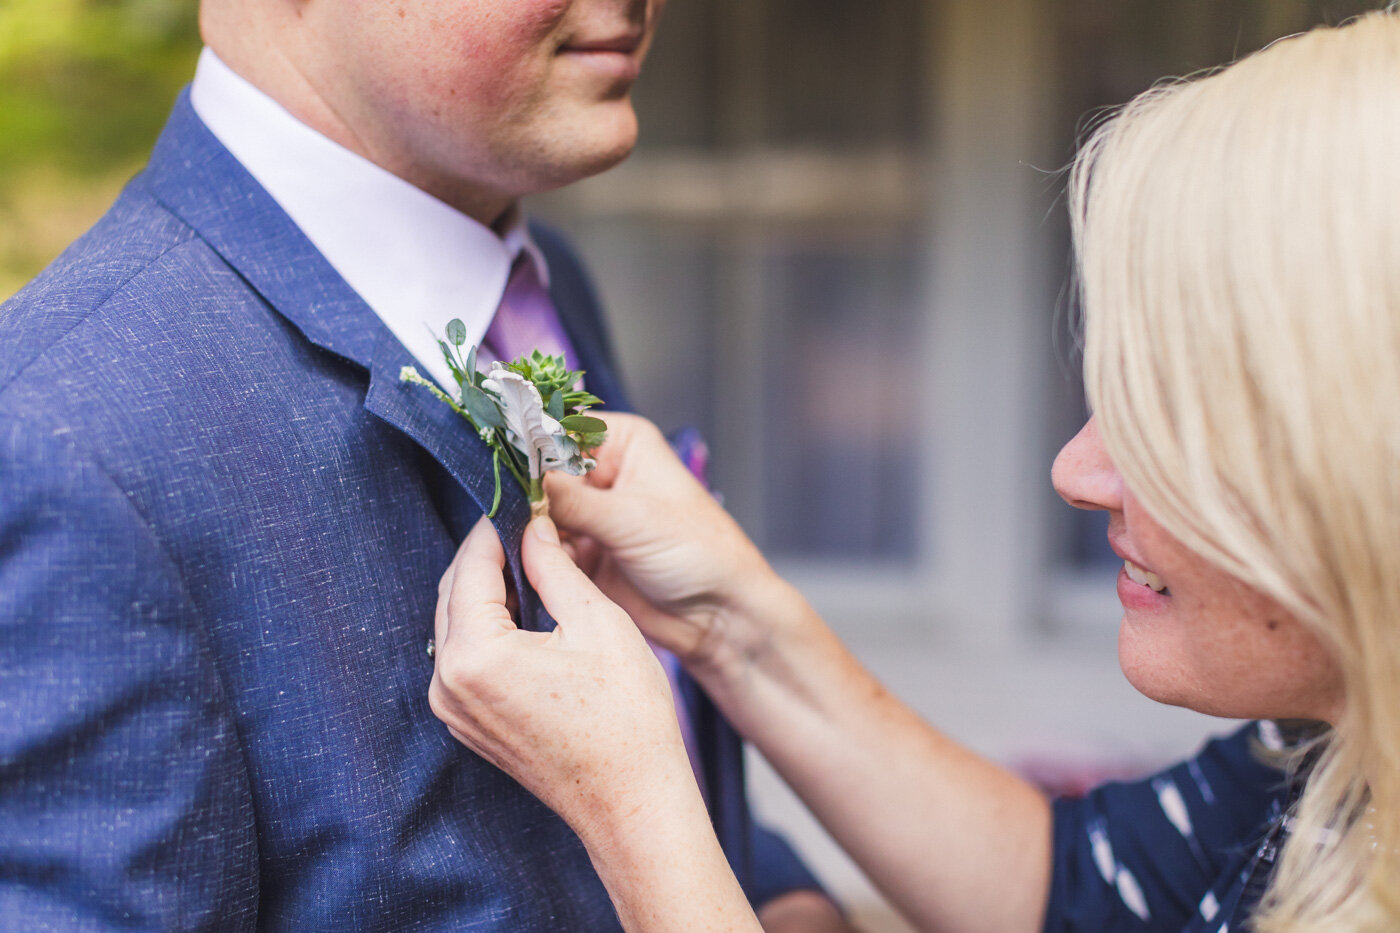 groom-getting-boutonniere-put-on